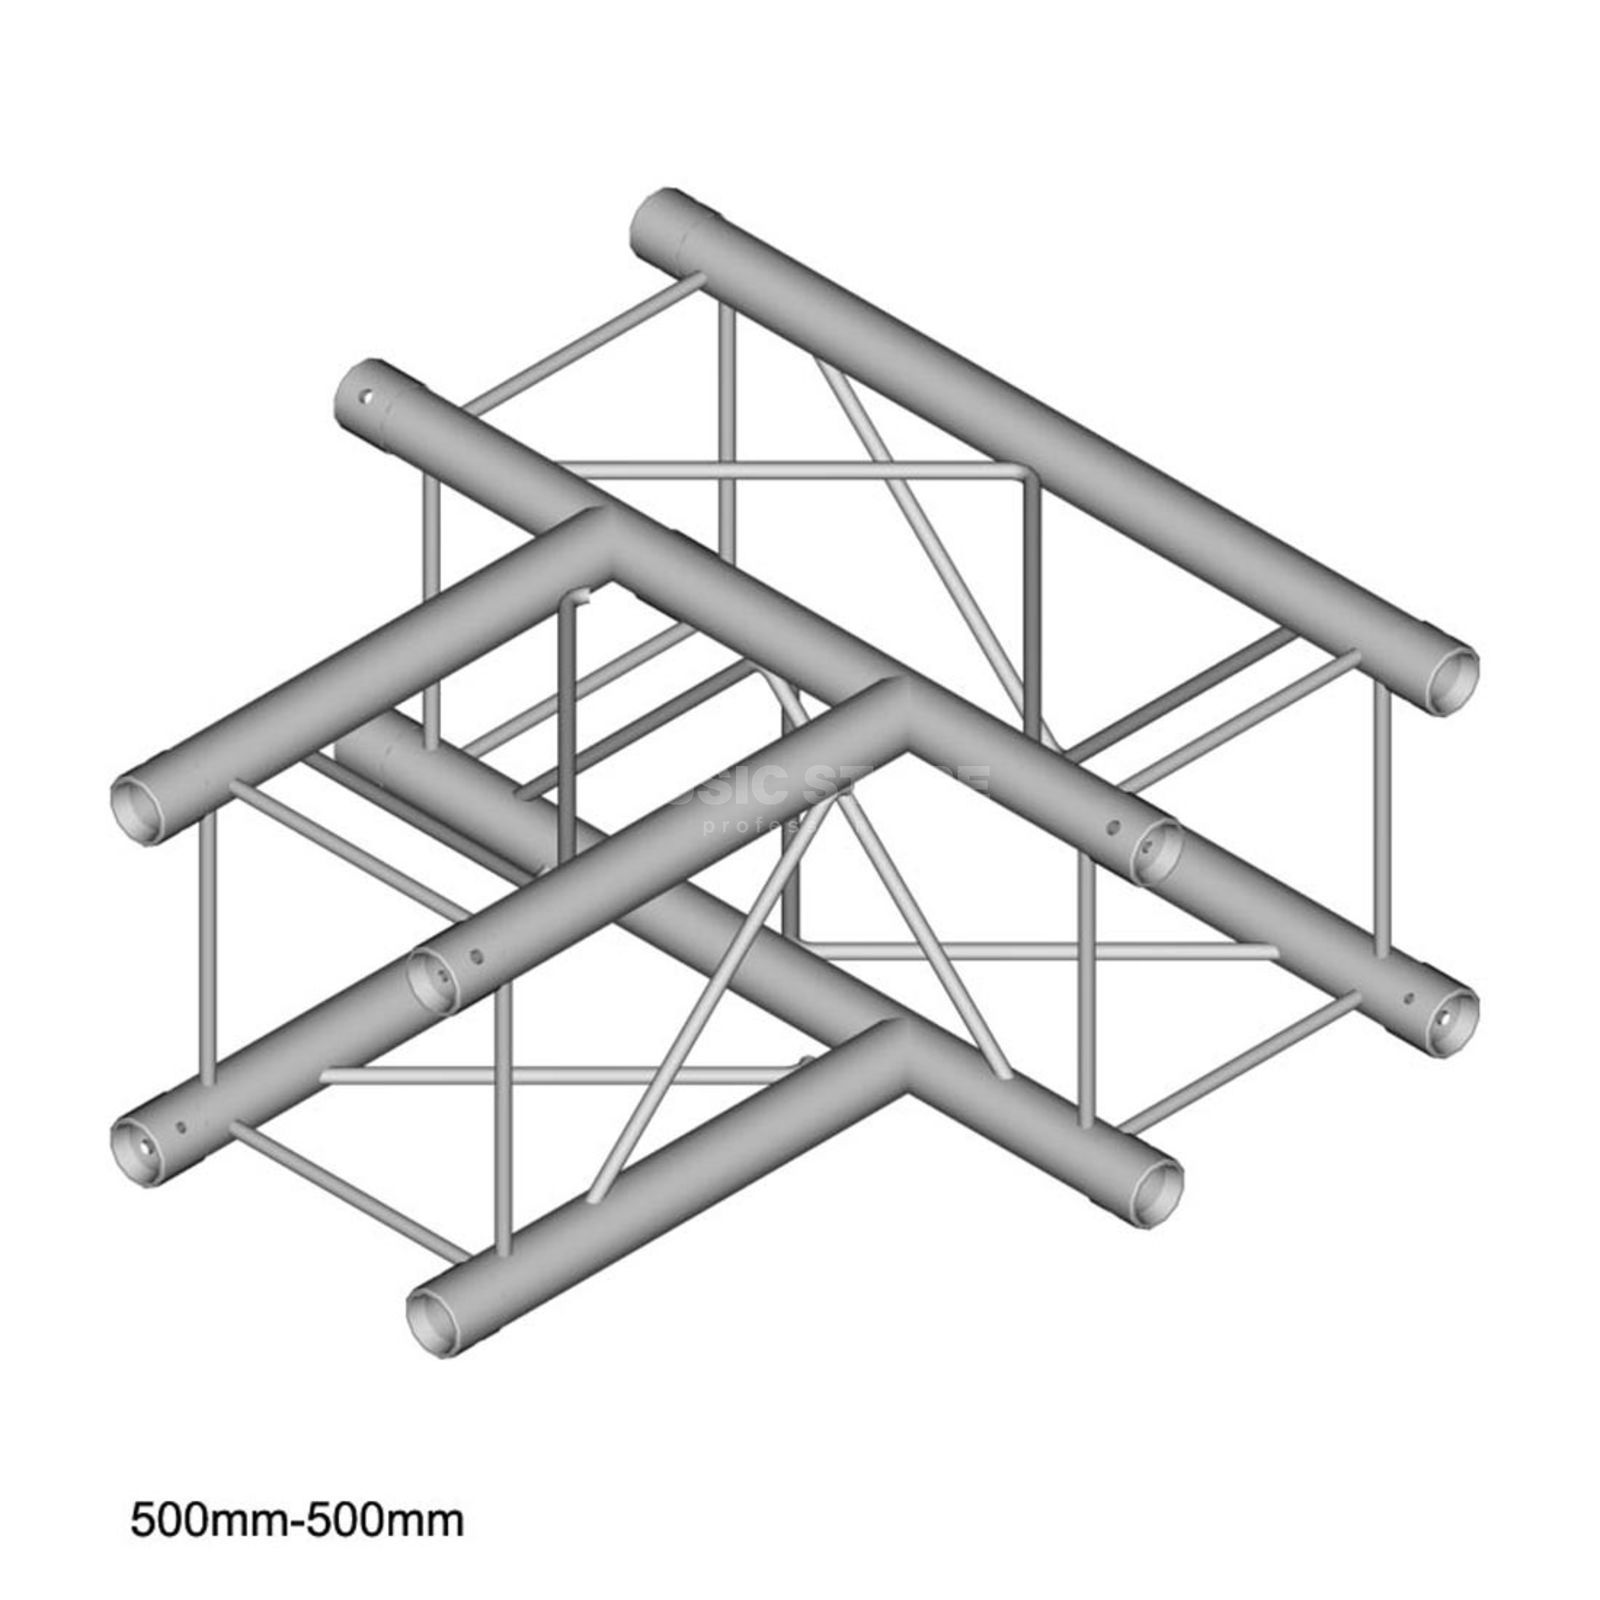 DURATRUSS DT 24 T35, 4-Point Truss T-Piece, 3-Way, 50cm Produktbillede